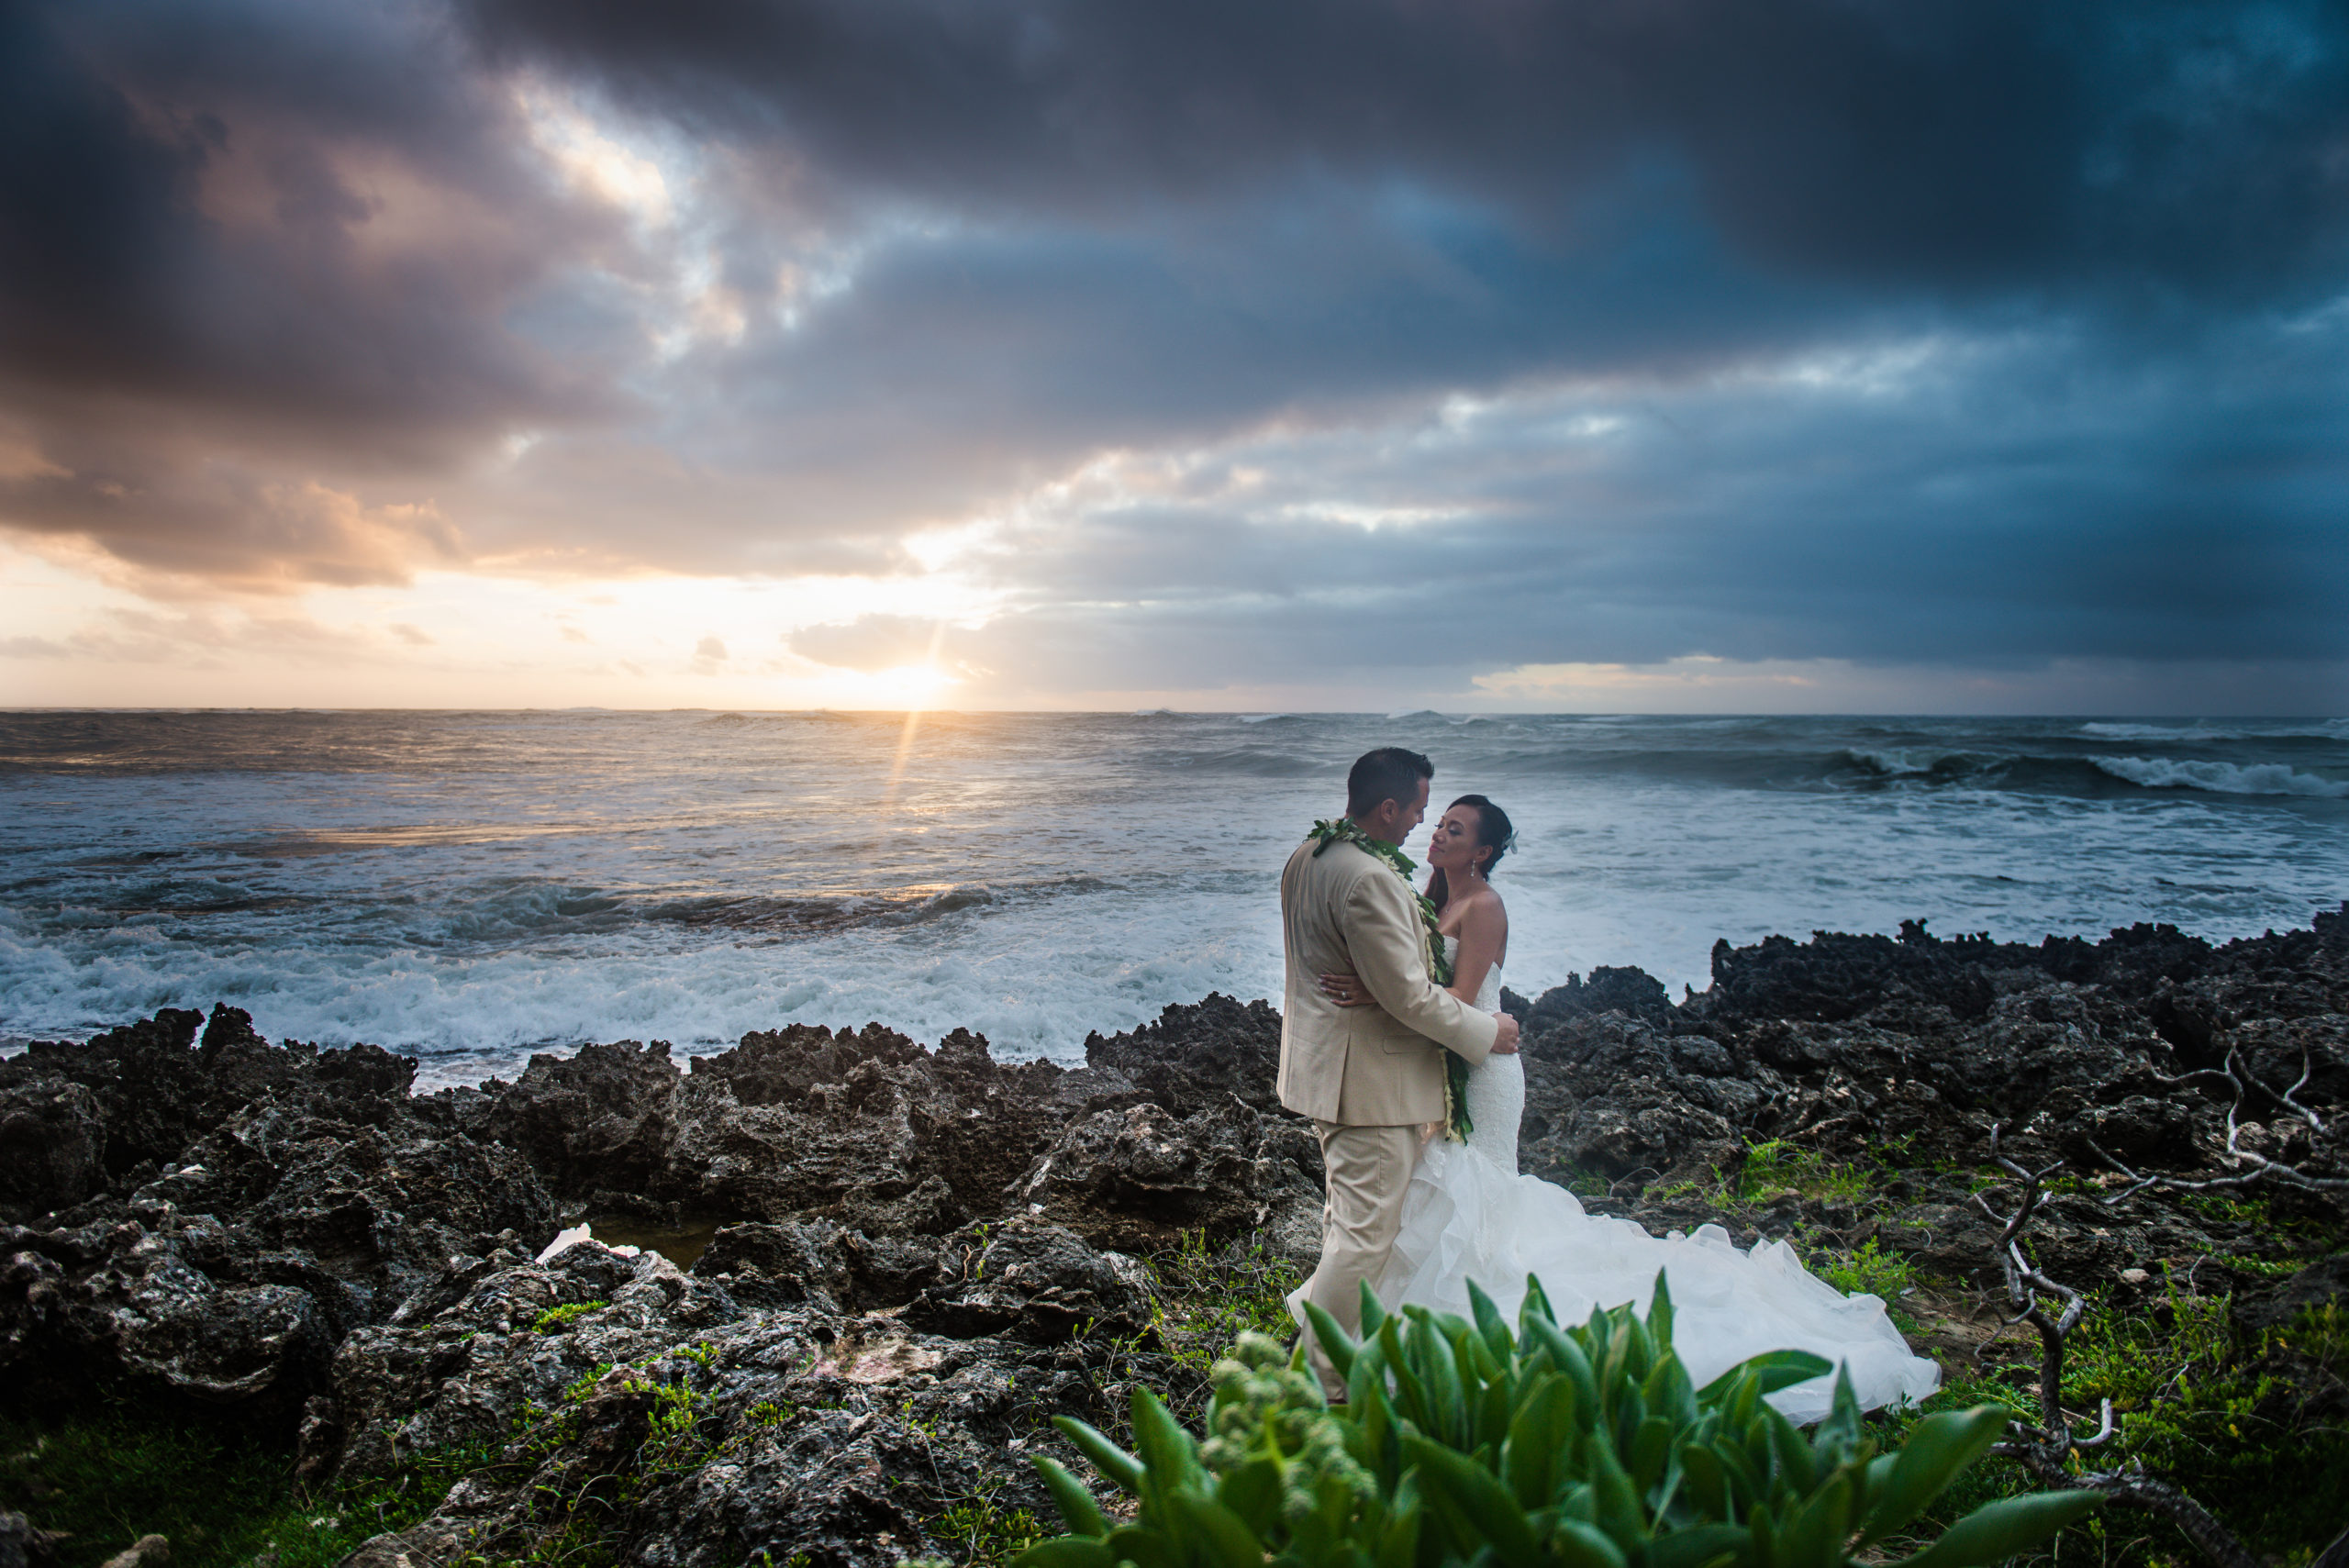 Elopement wedding in Hawaii on the beach